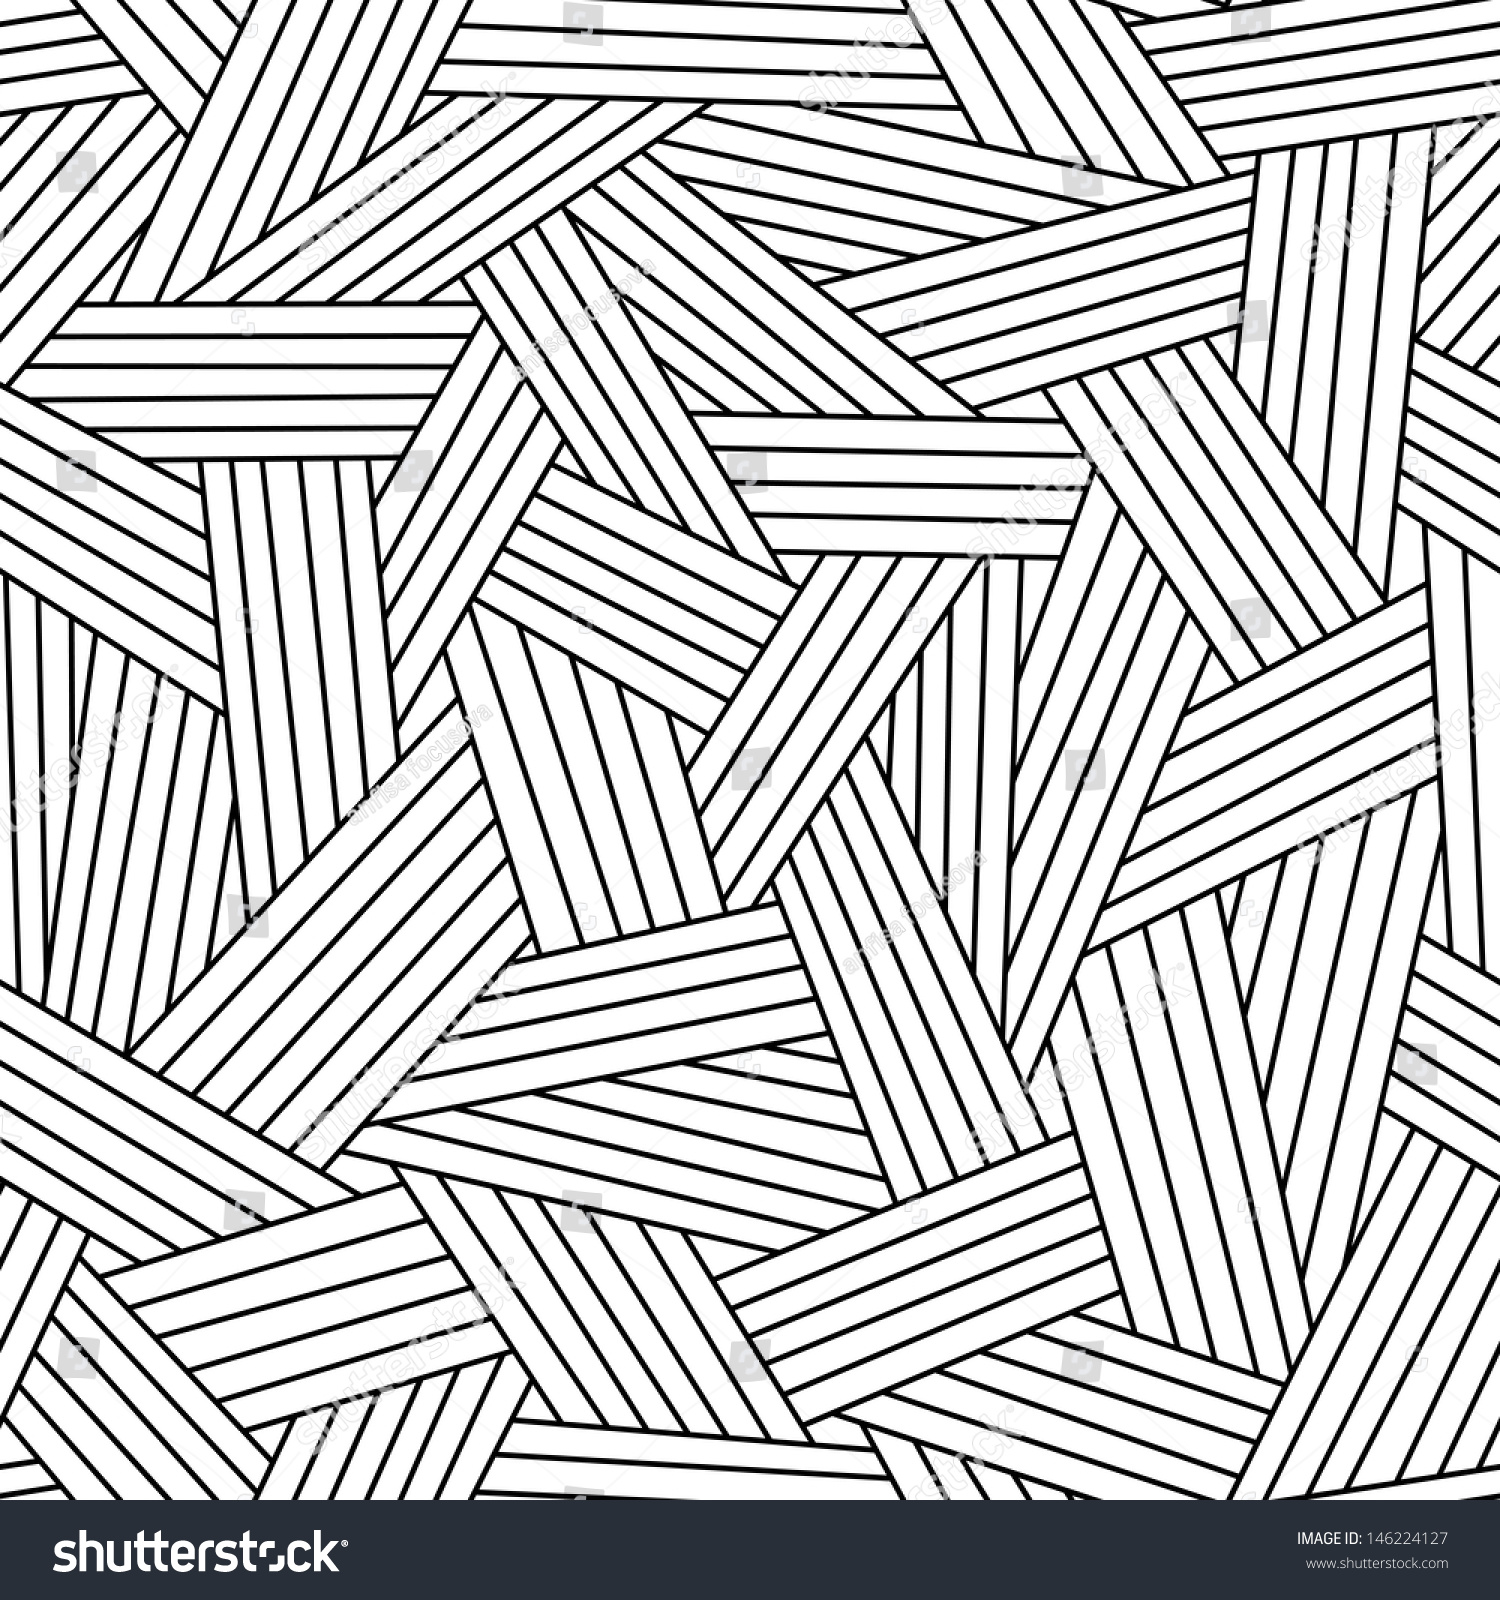 Simple Line Art Abstract : Easy abstract line drawings imgkid the image